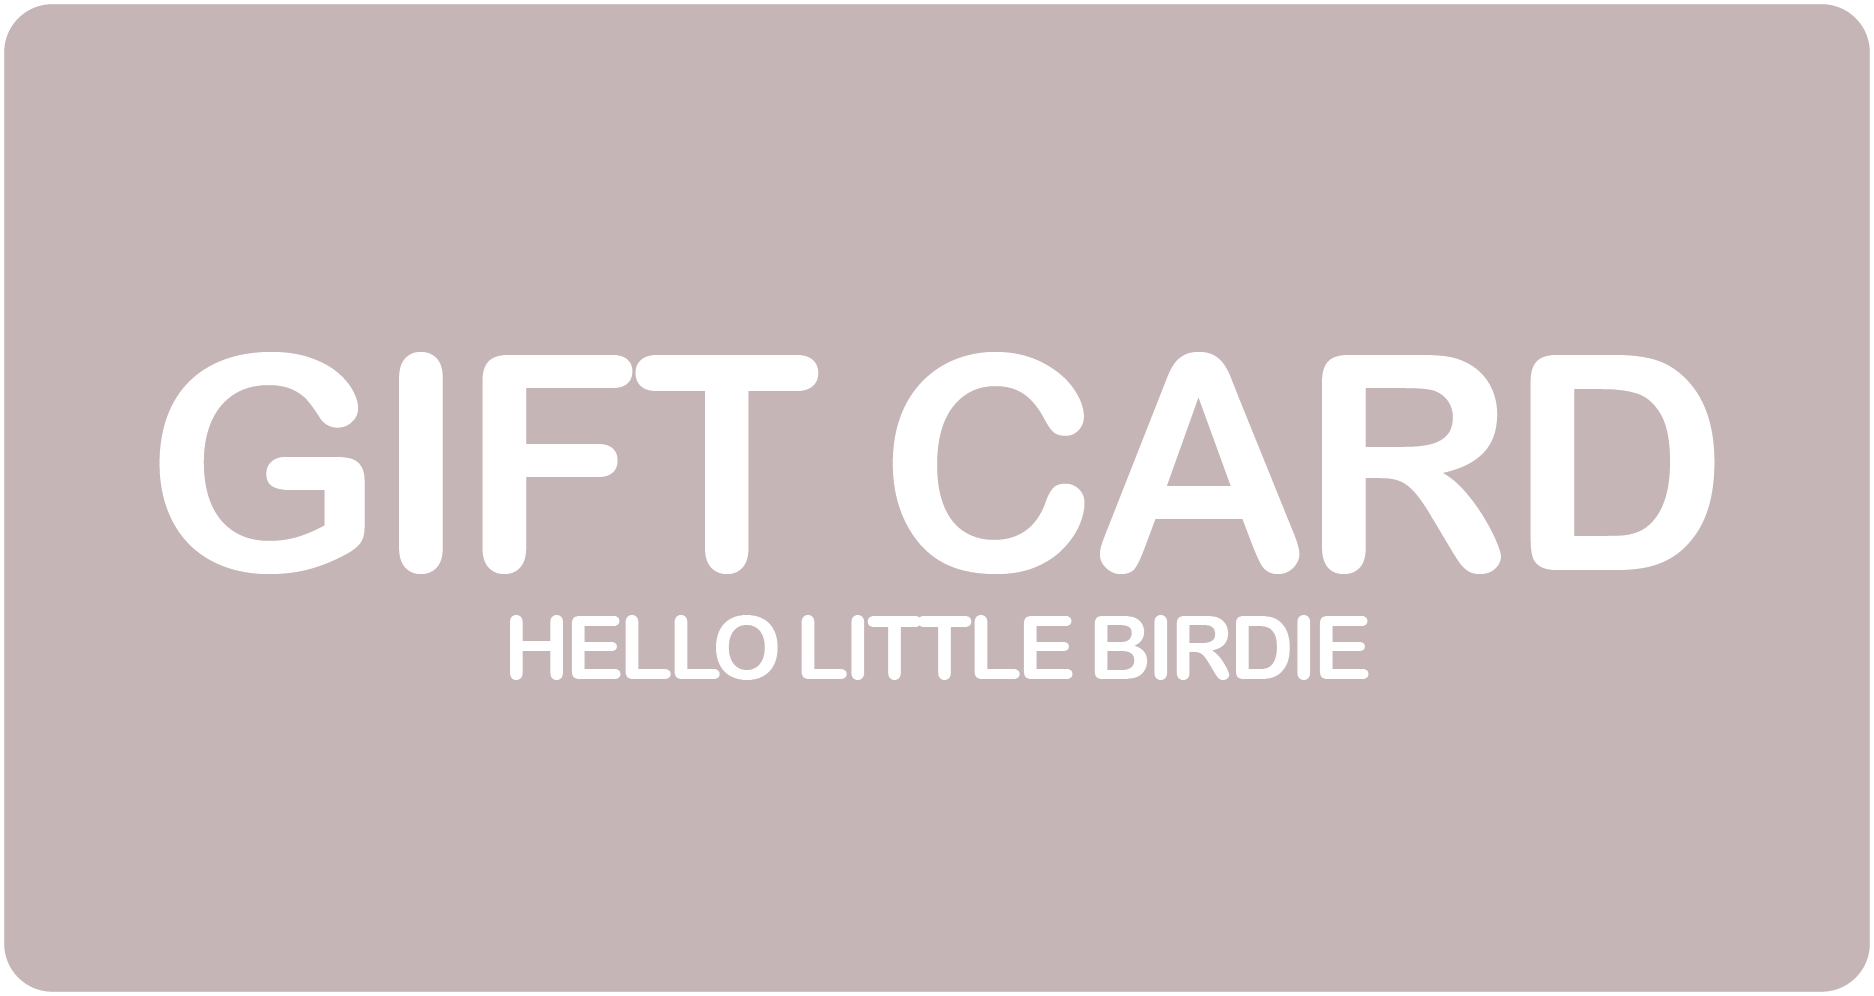 eGift Card - Hello Little Birdie